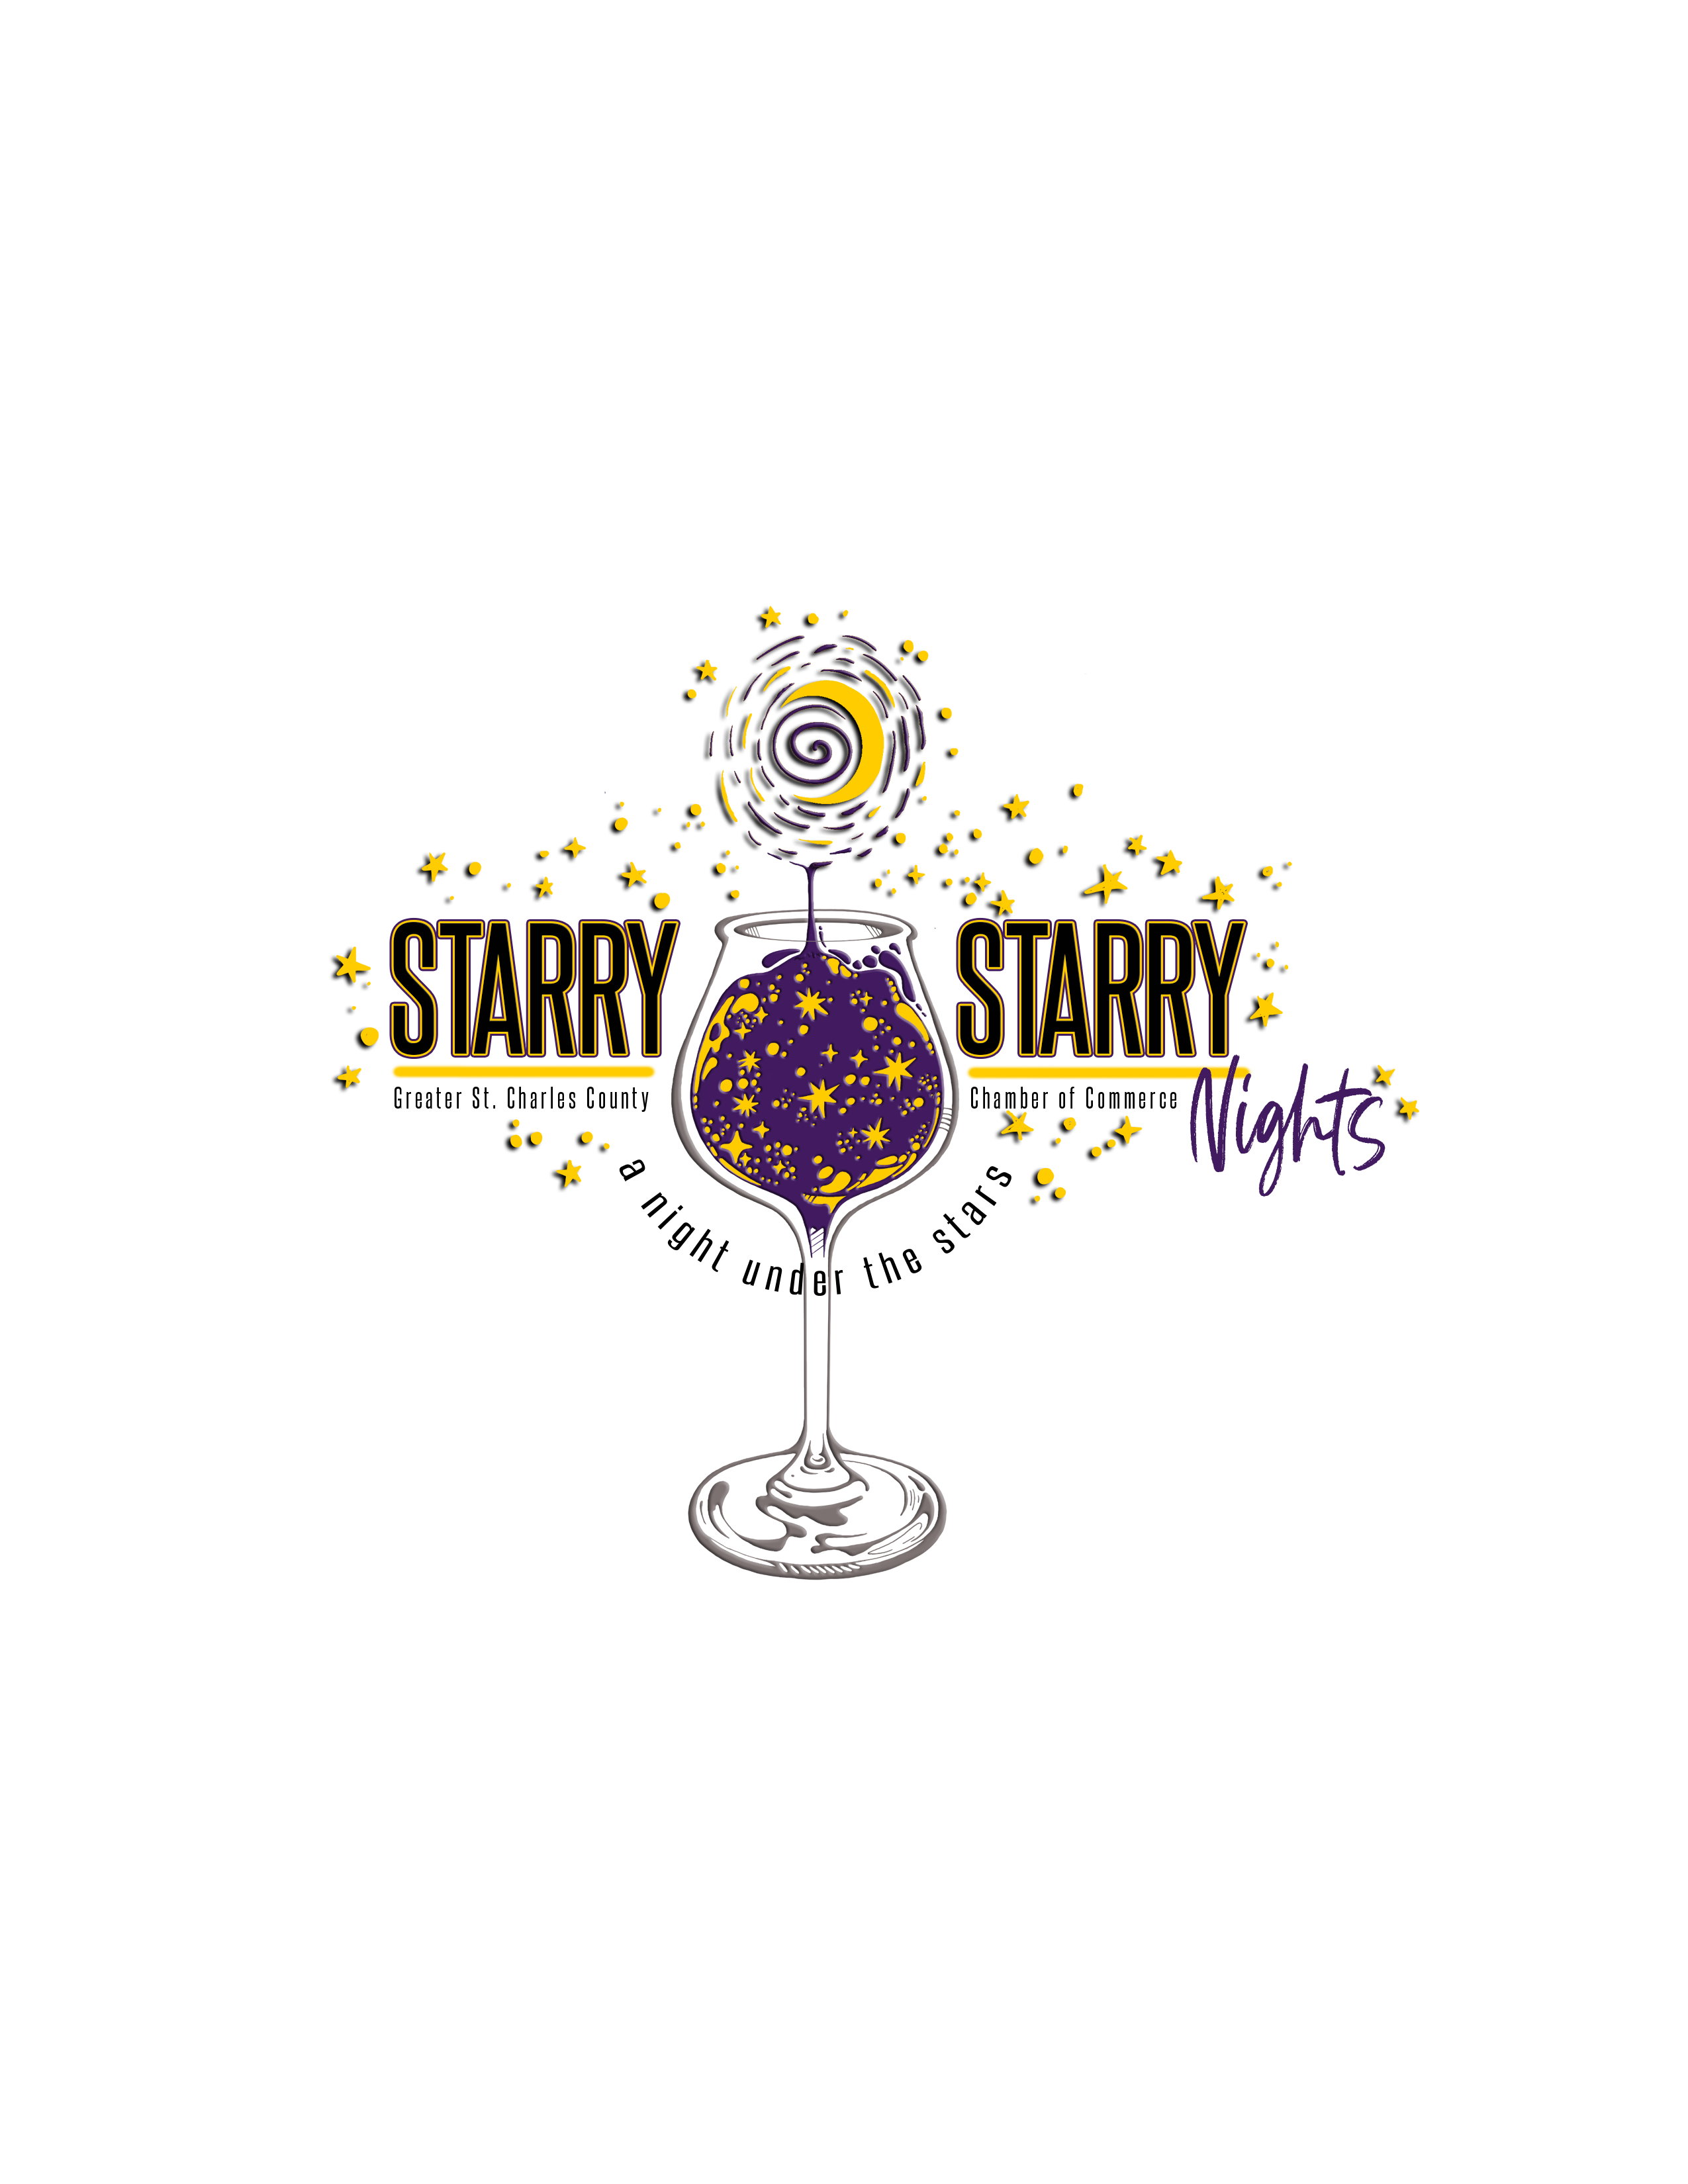 Classic Sign Services Presents the Greater St. Charles County Chamber of Commerce Starry Starry Nights